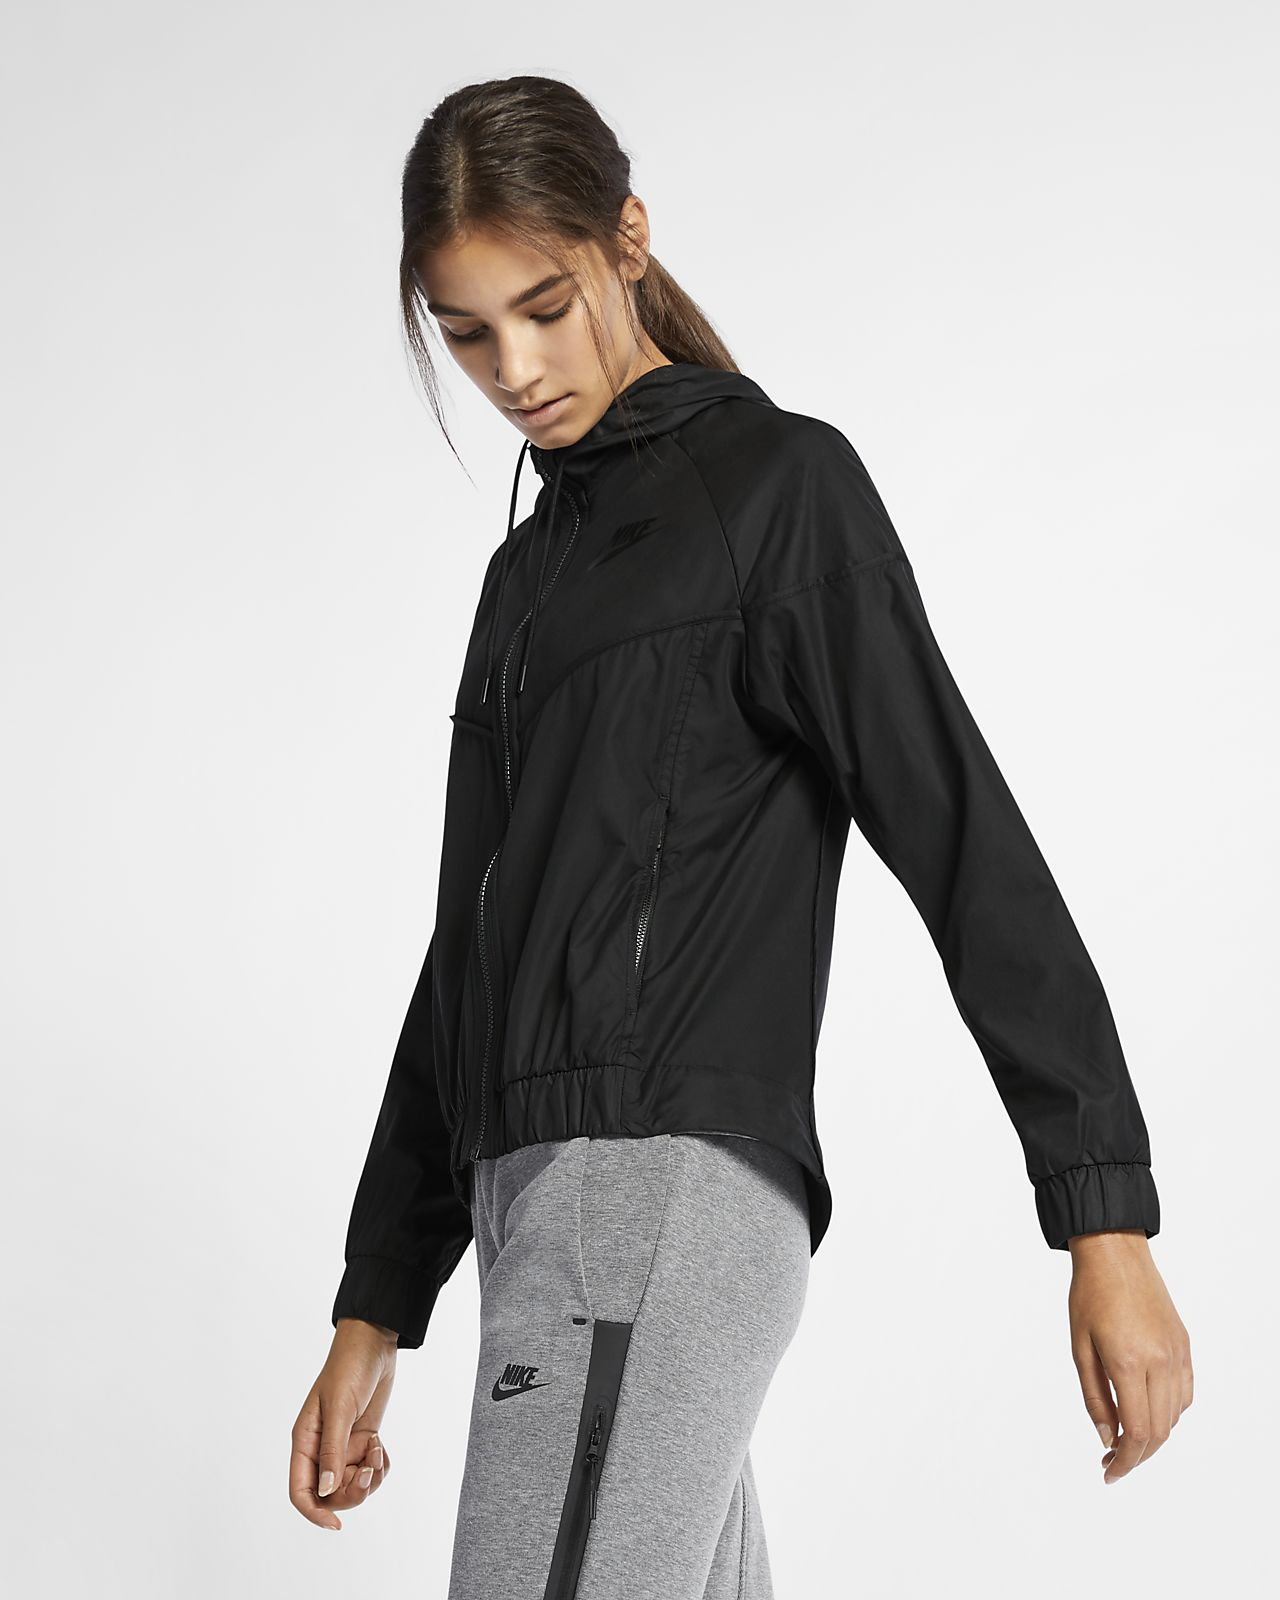 8018cdefa5 Low Resolution Nike Sportswear Windrunner Women s Woven Windbreaker Nike  Sportswear Windrunner Women s Woven Windbreaker